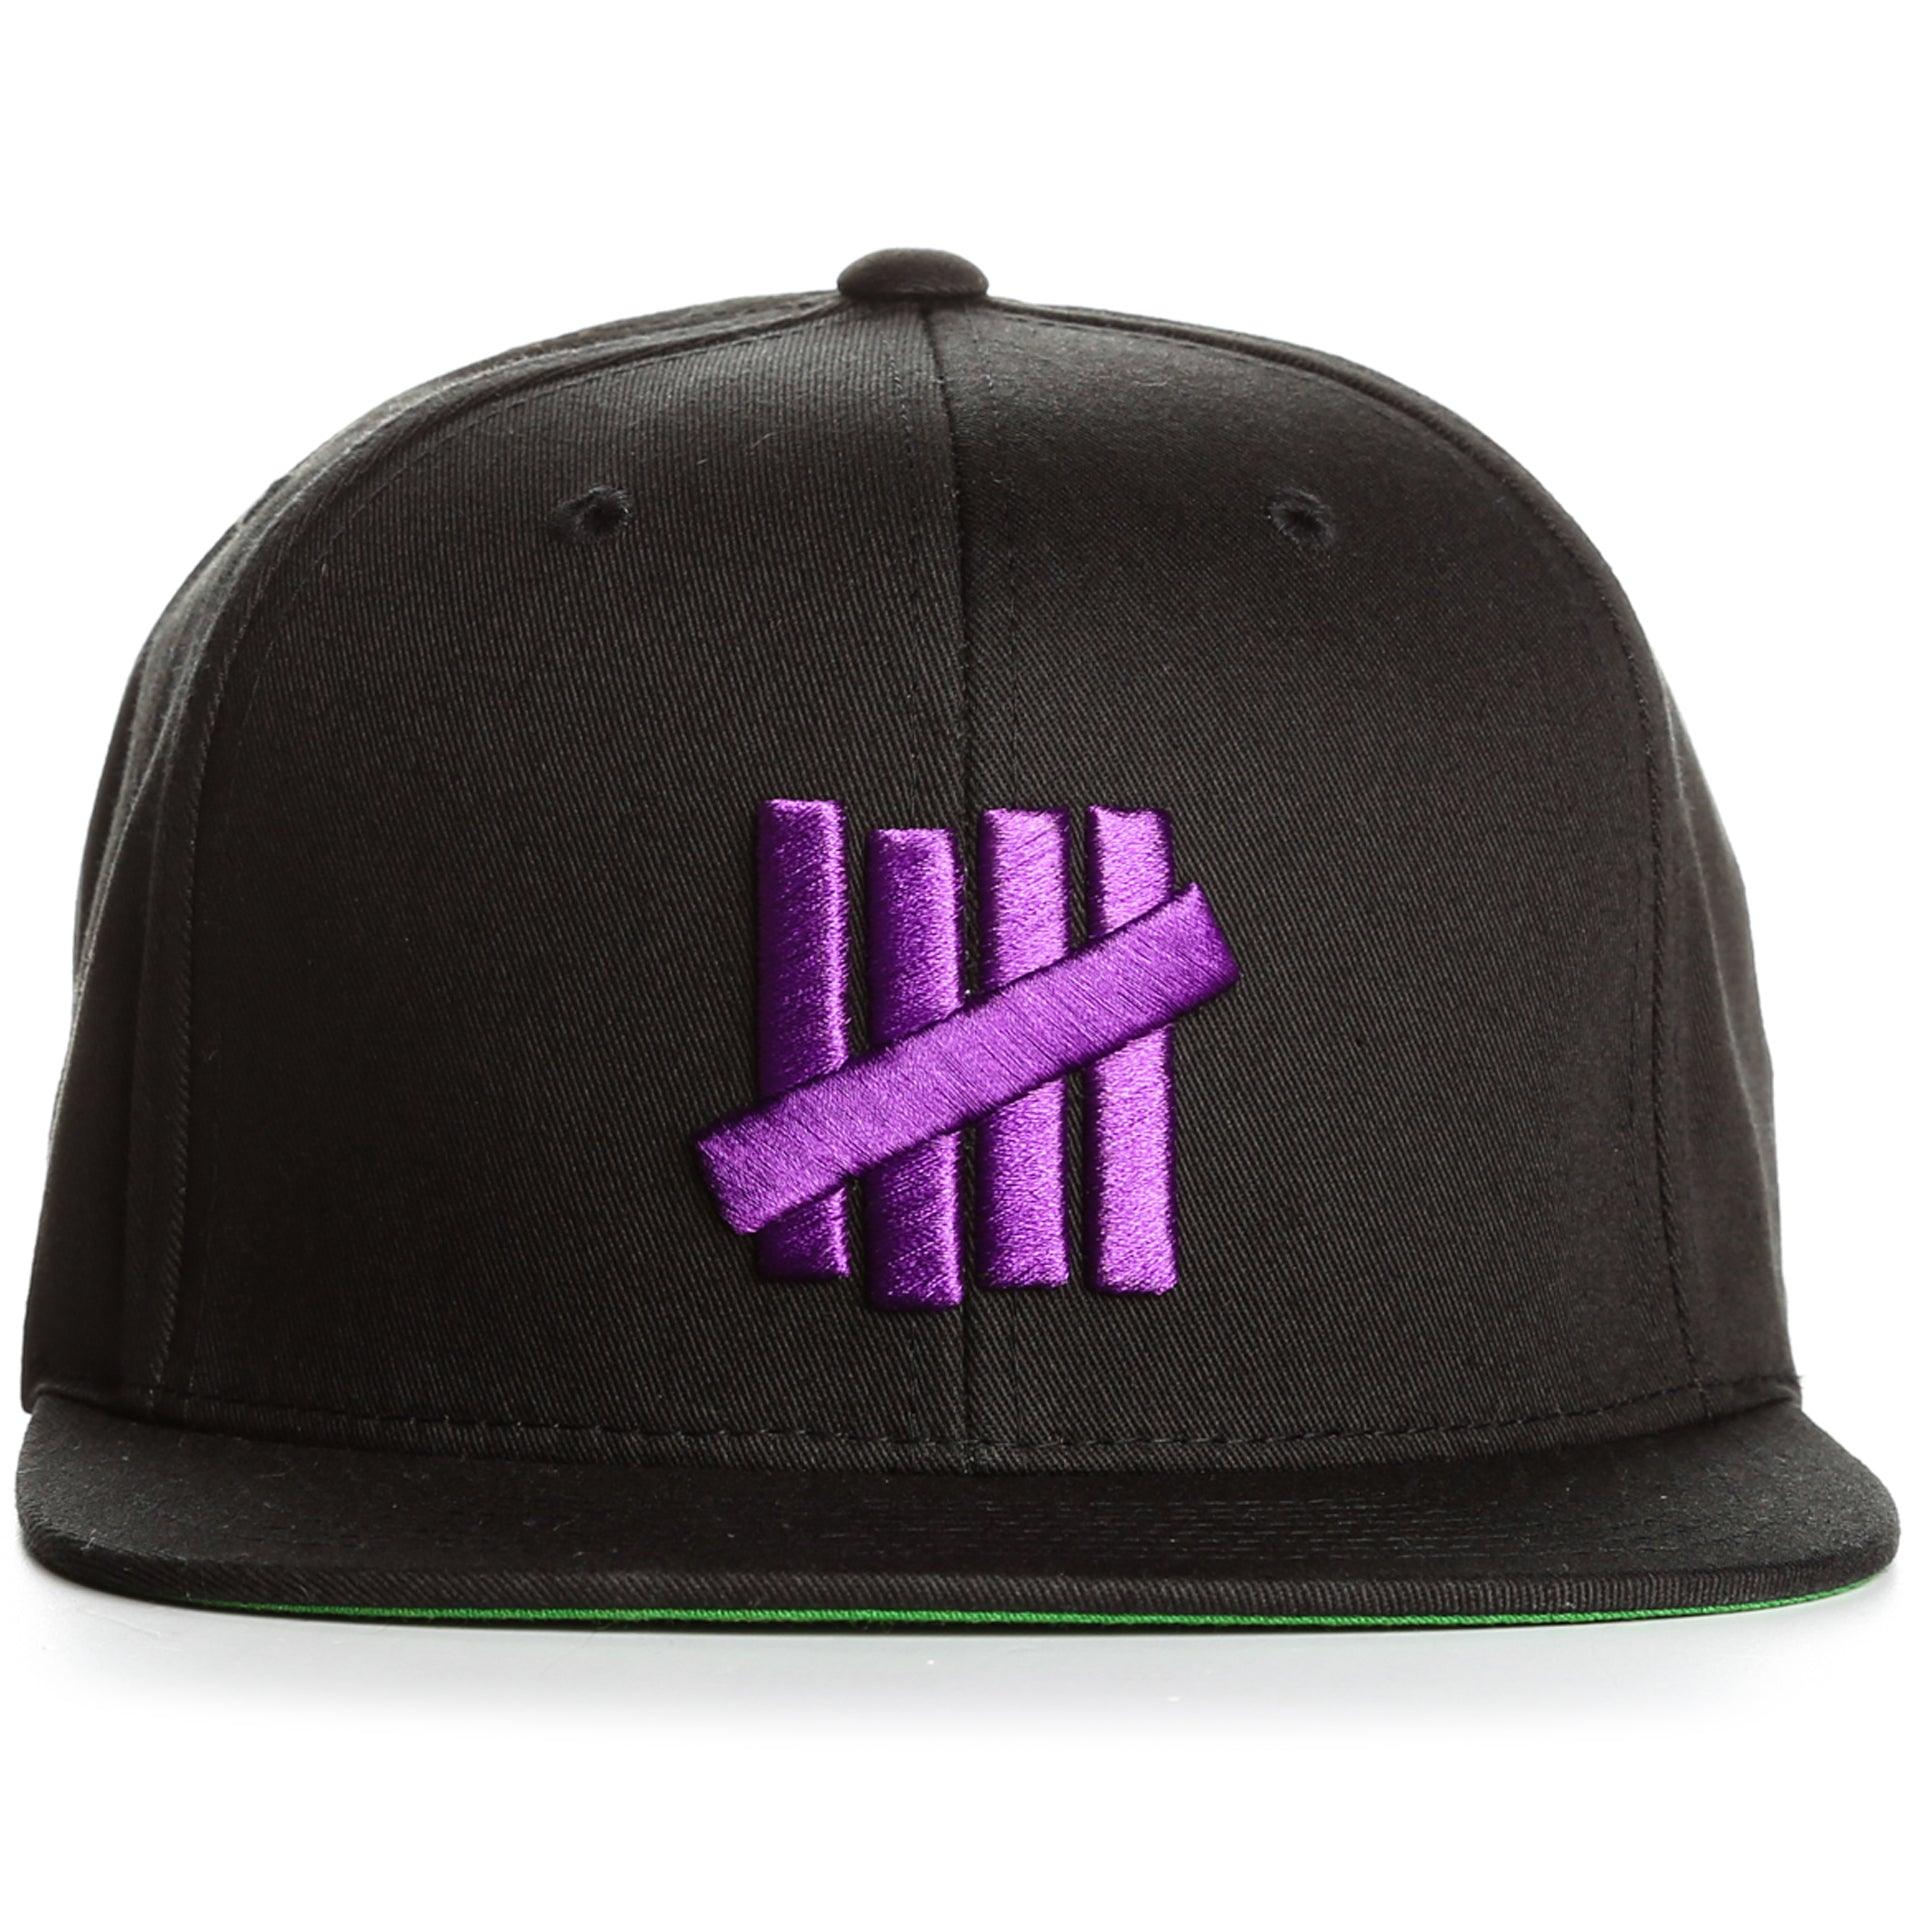 a11f72bd6c3 Undefeated 5 Strike Snapback - Black - New Star